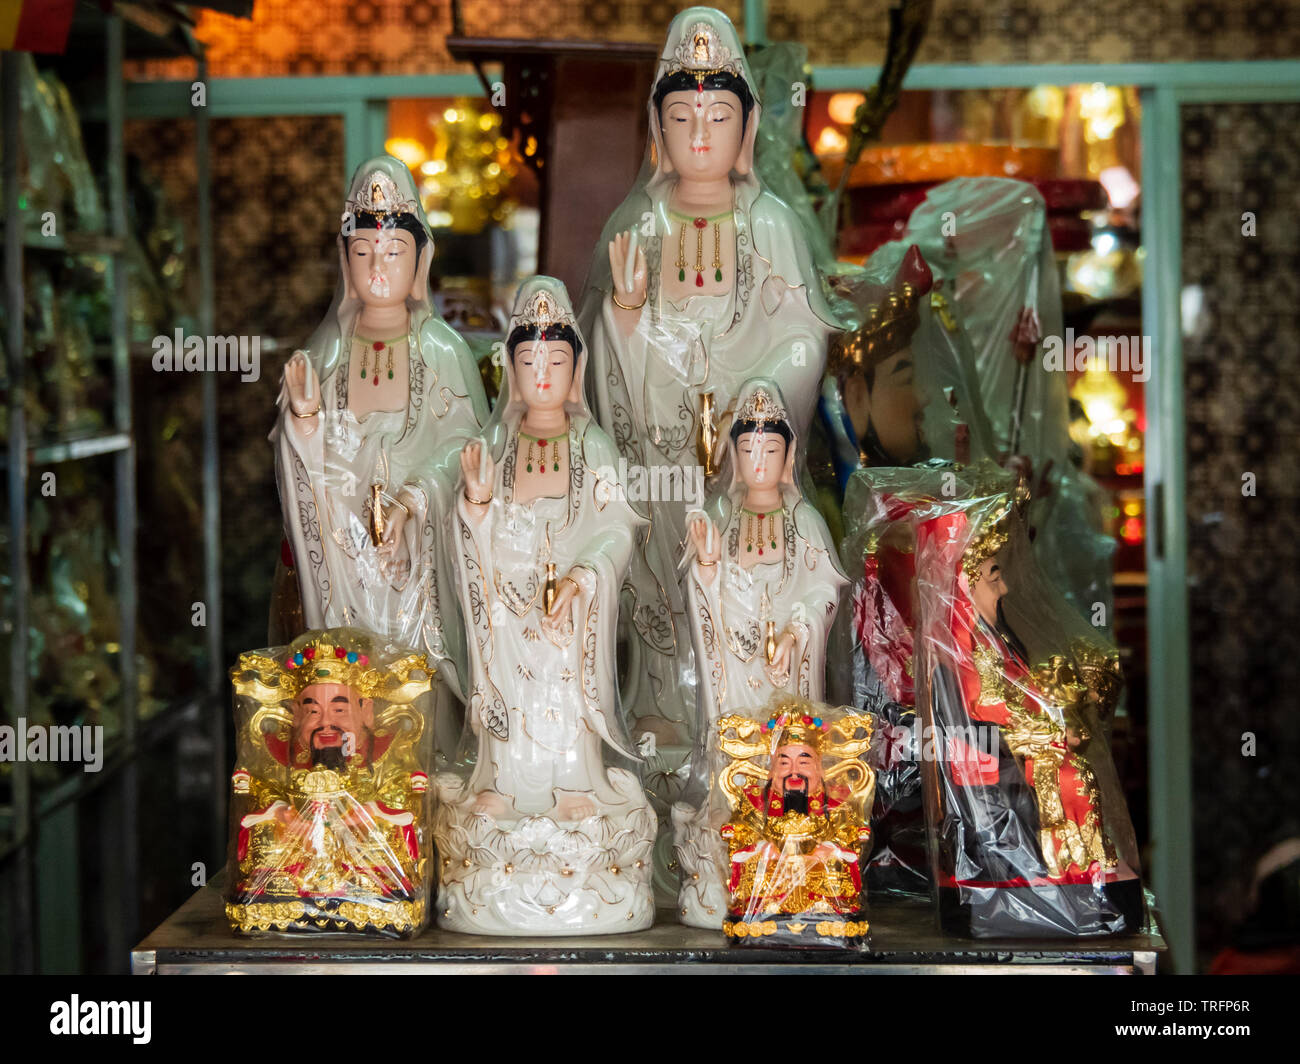 Figurines of the Goddess of Mercy, Kwan Yin / Kuan Yin and the God of Fortune, Cai Shen, at a Taoist / Daoist prayer items store Stock Photo